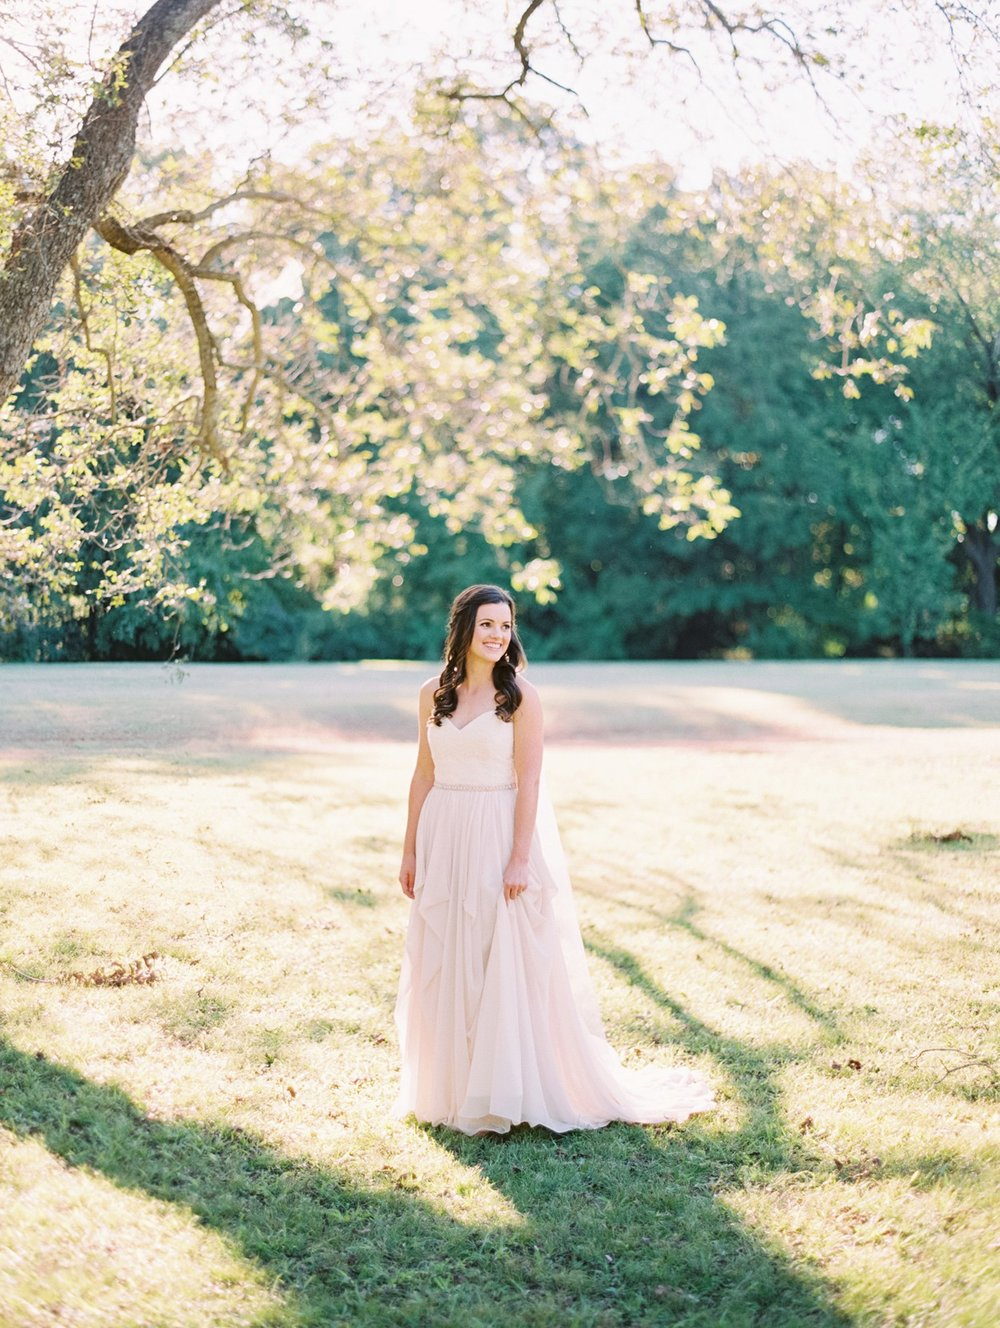 Becca Lea Photography, Fine art film wedding photographer, Contax 645, Film Photographer, Fine Art Editorial Photographer, Dallas Wedding Photographer, Lindsey Zamora Planning, Truvelle Wedding gown, Q the MUA, BonTerra Farms, Fine Art Dallas weddings